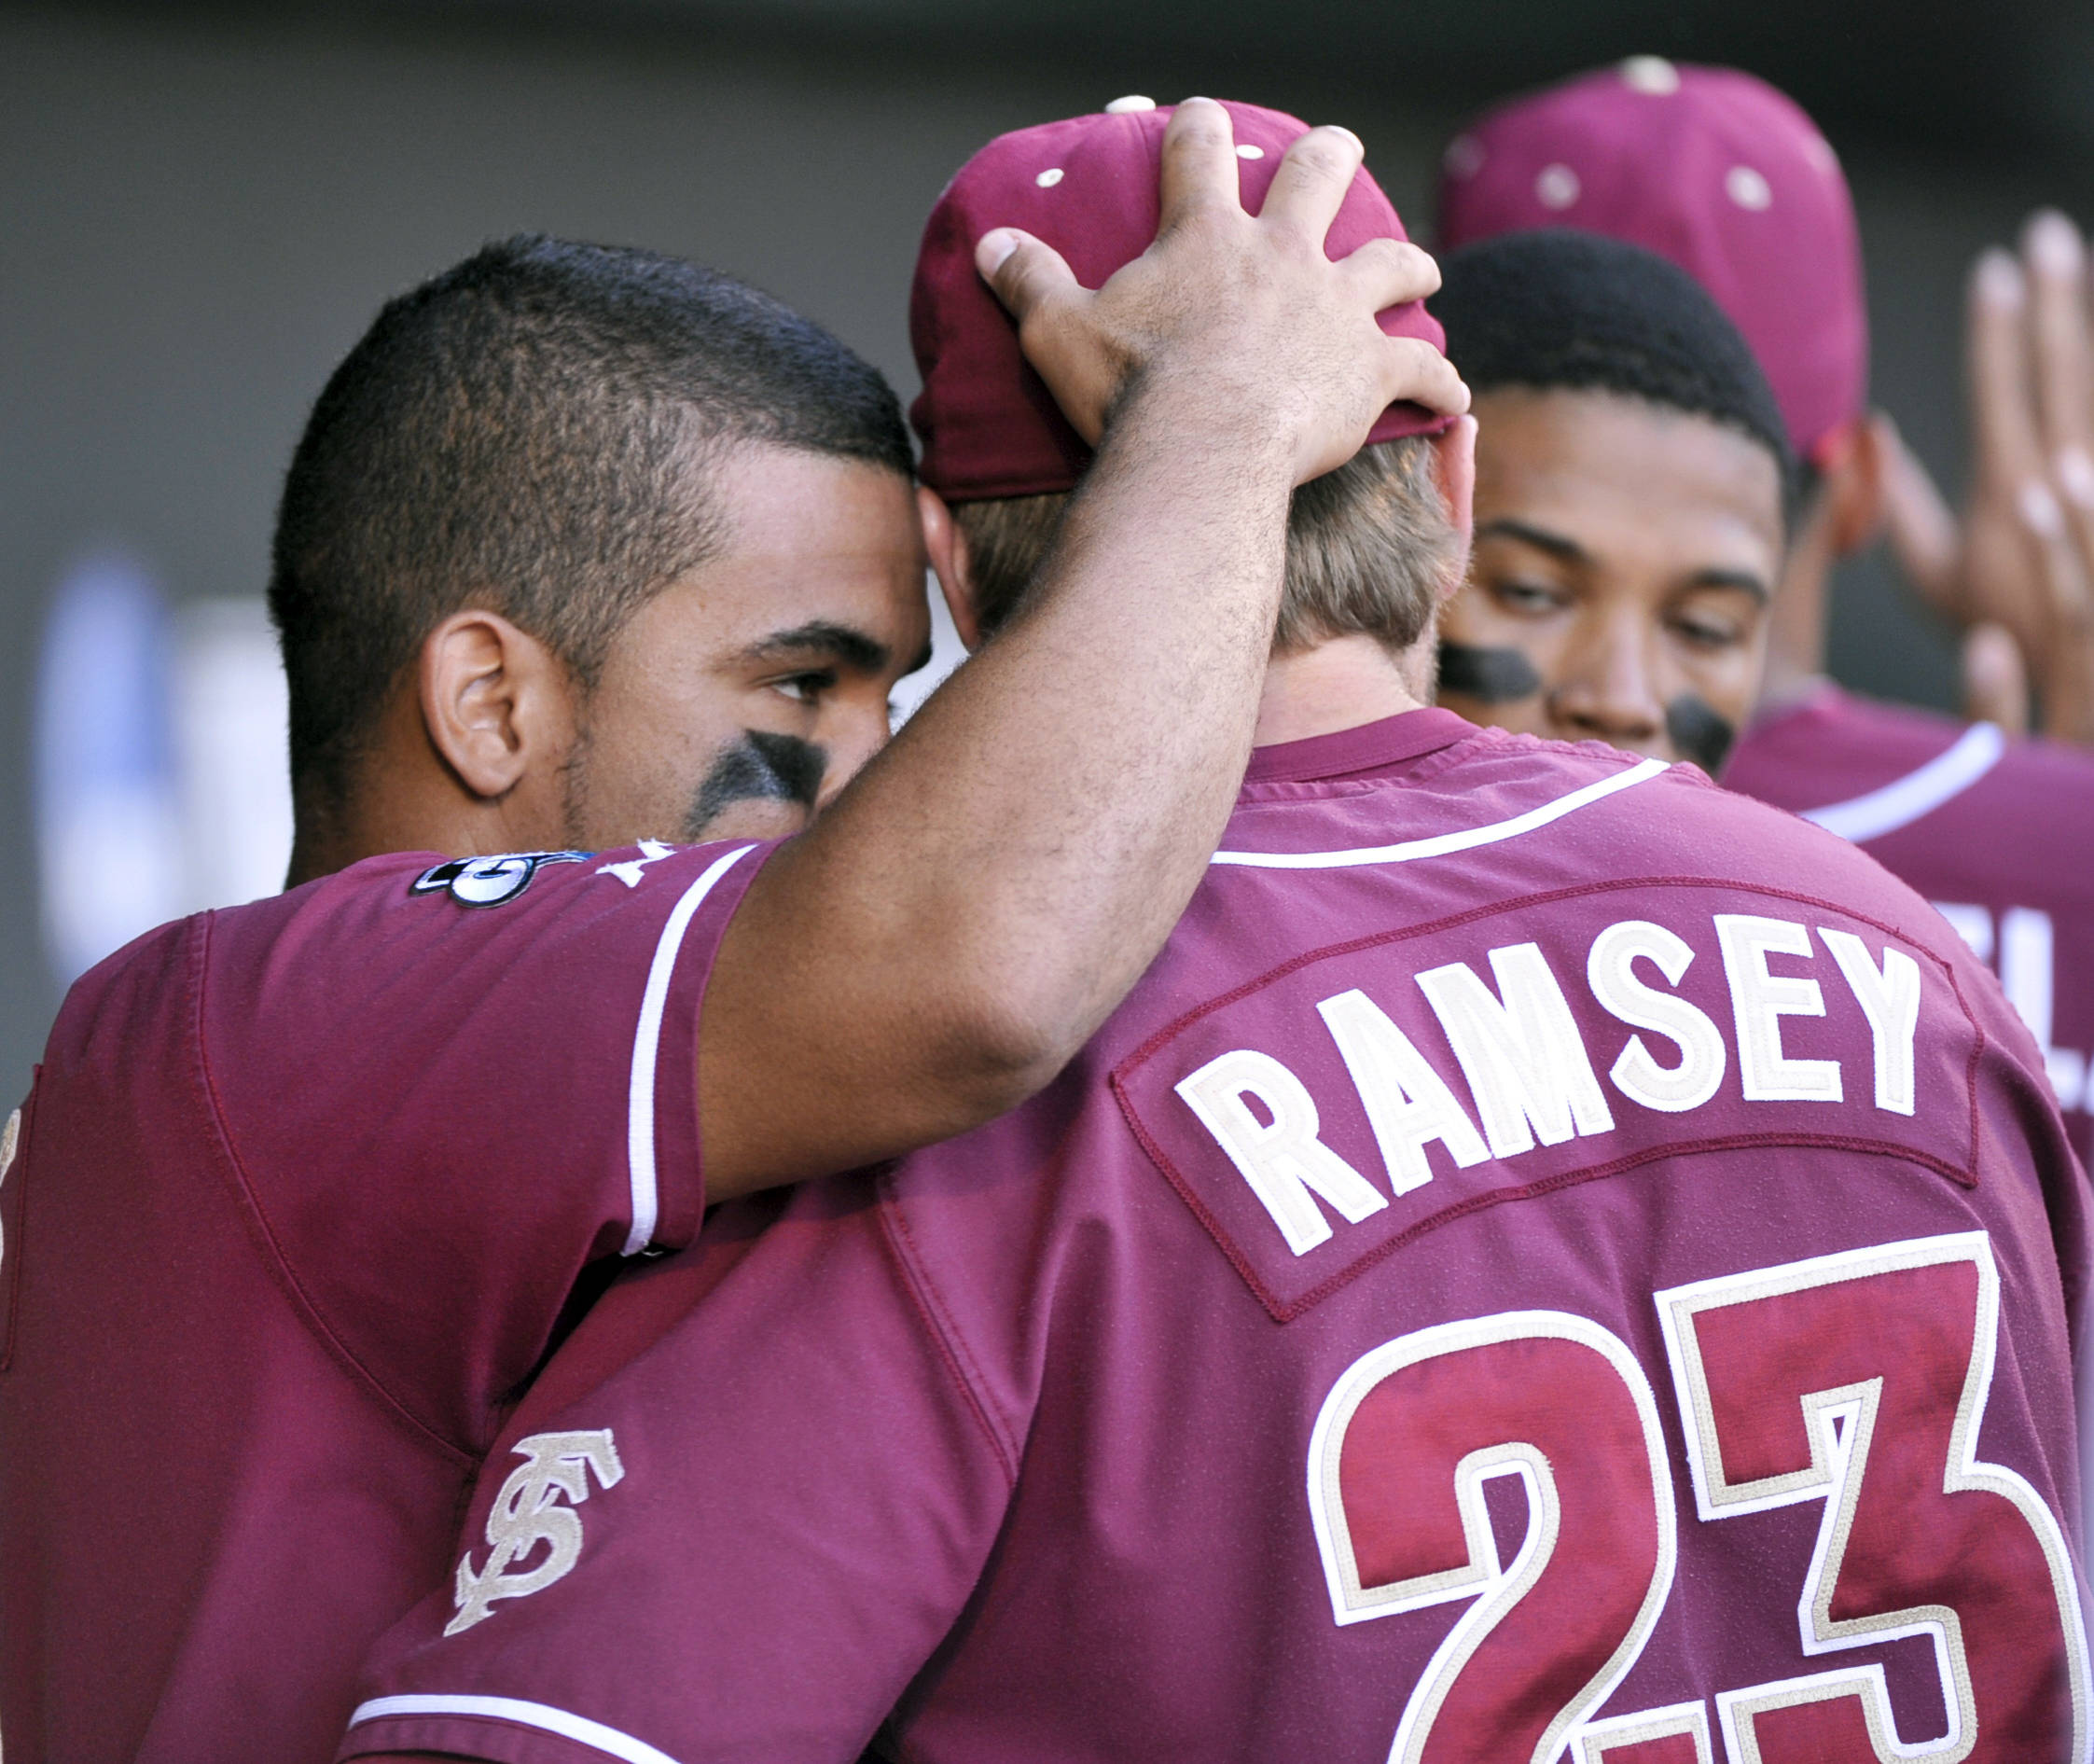 Florida State's Devon Travis, left, and James Ramsey hug in the dugout during the ninth inning. (AP Photo/Ted Kirk)